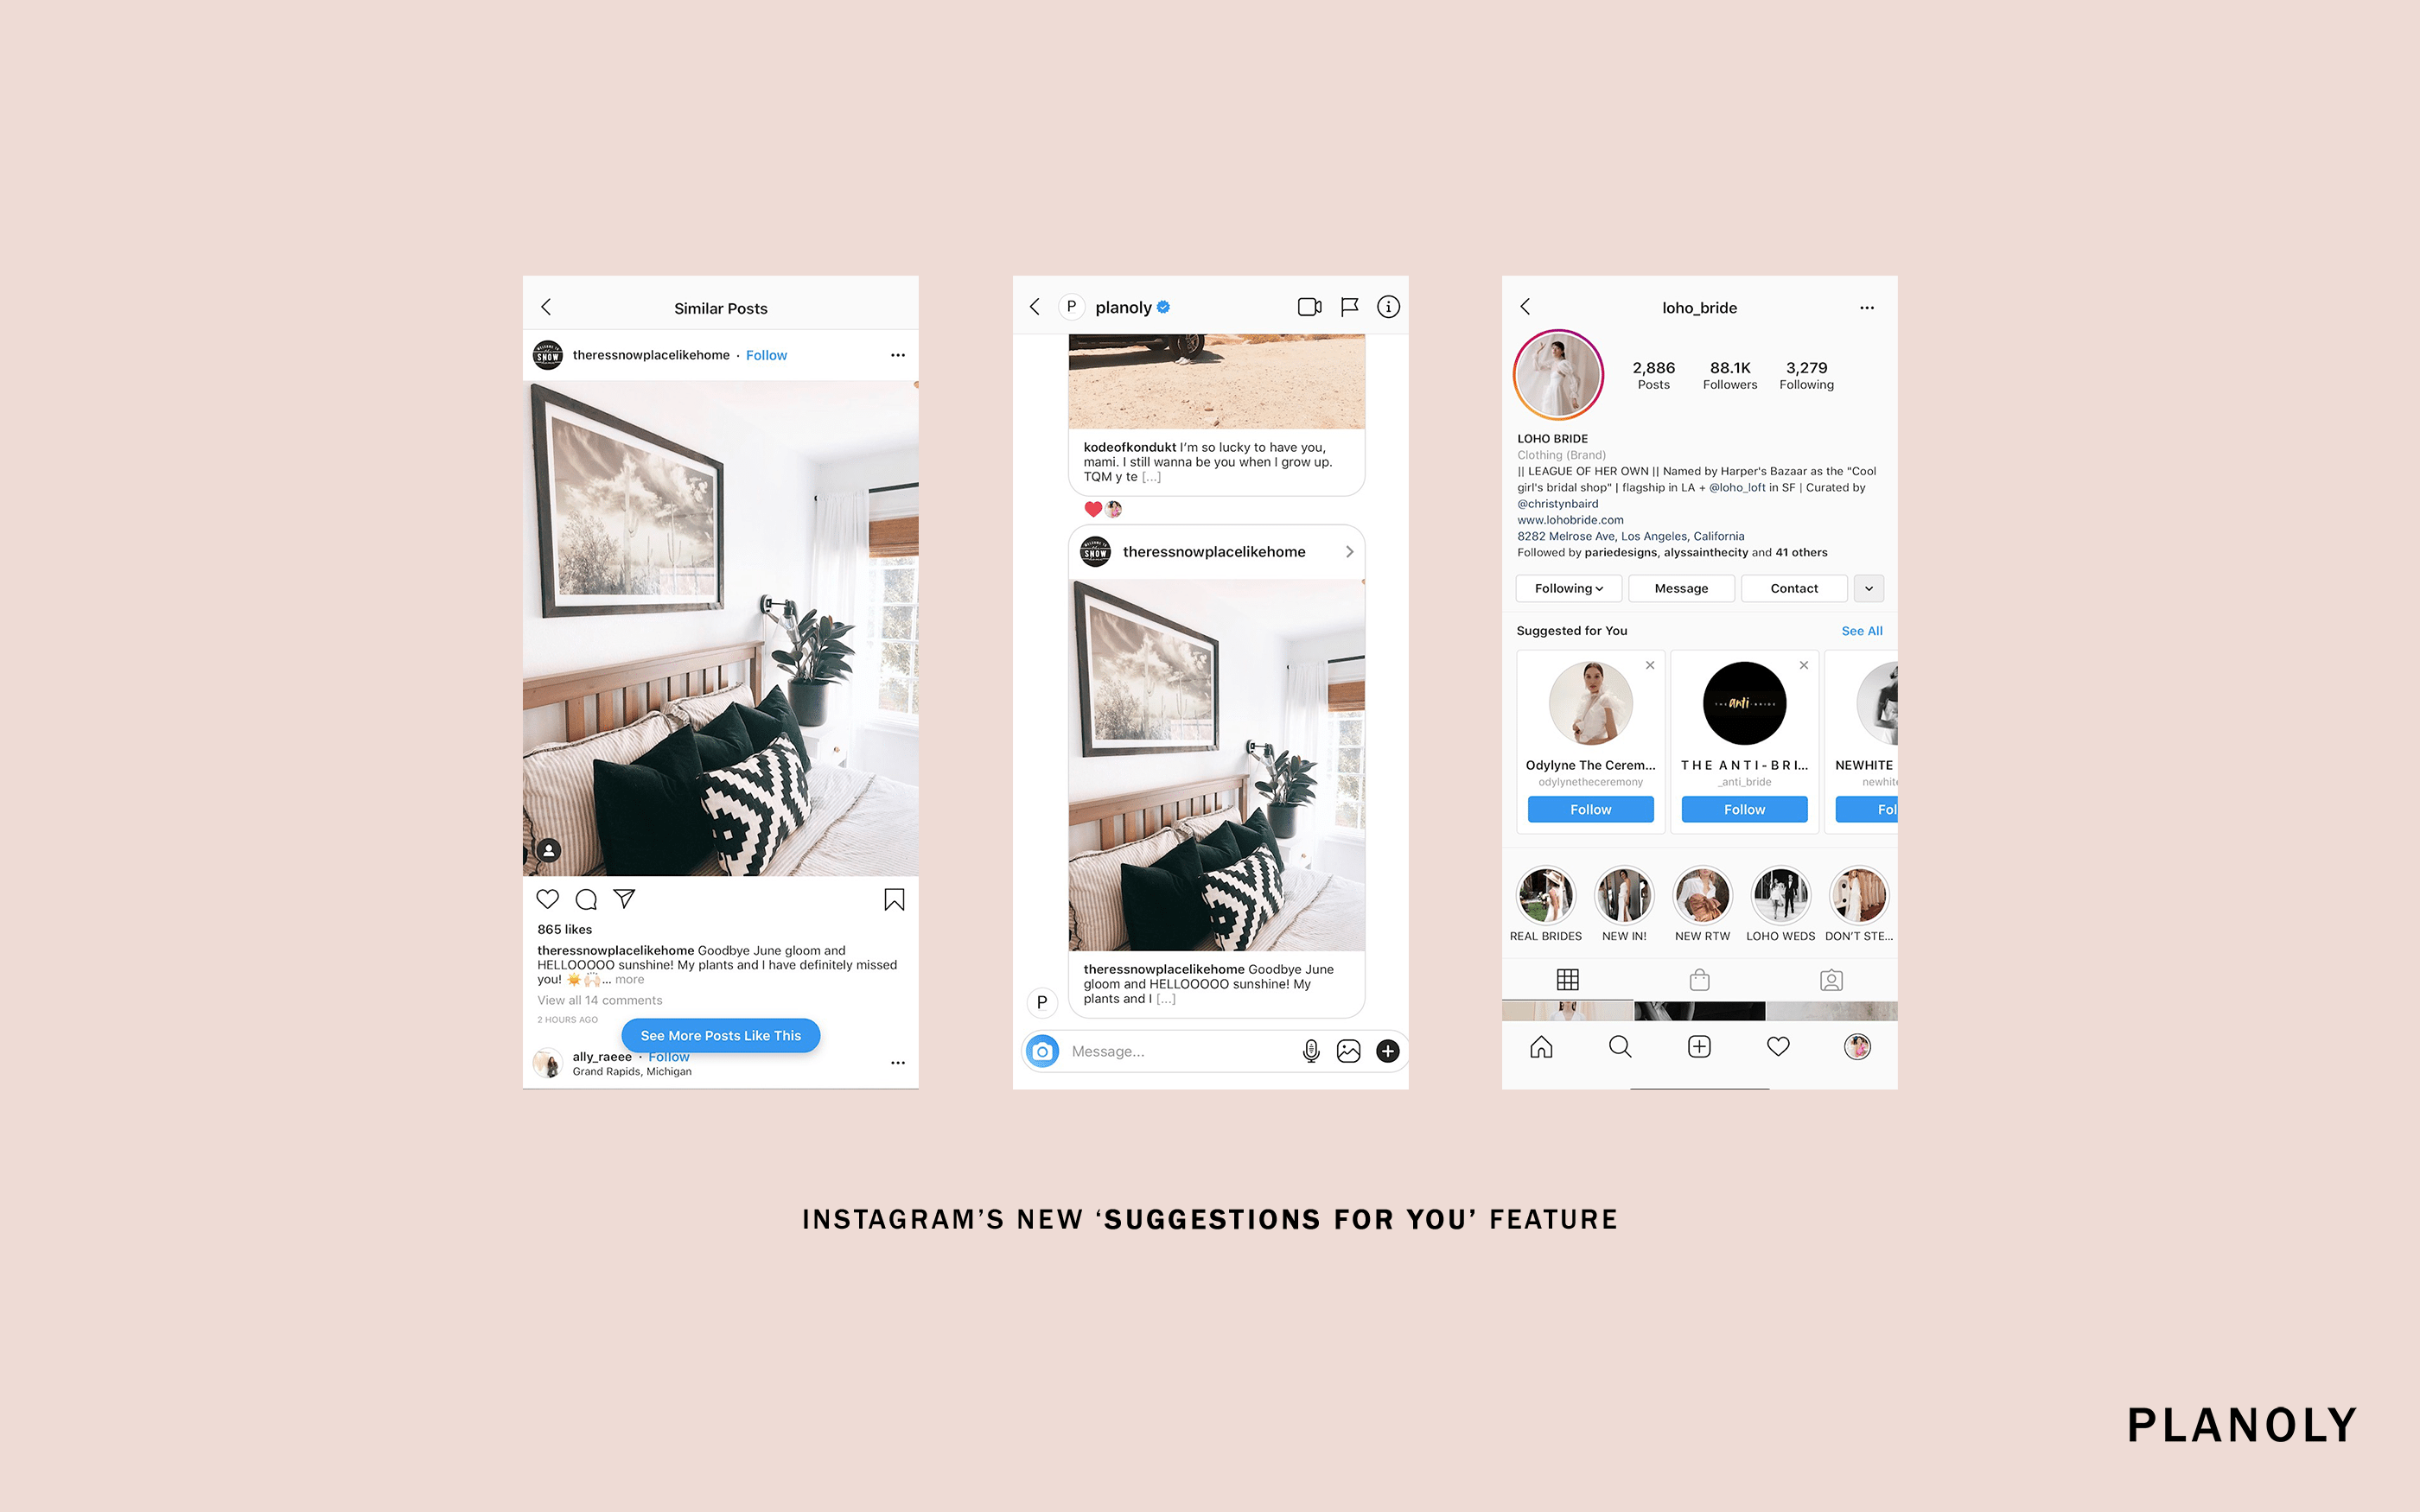 Instagram's New 'Suggestions for You' Feature